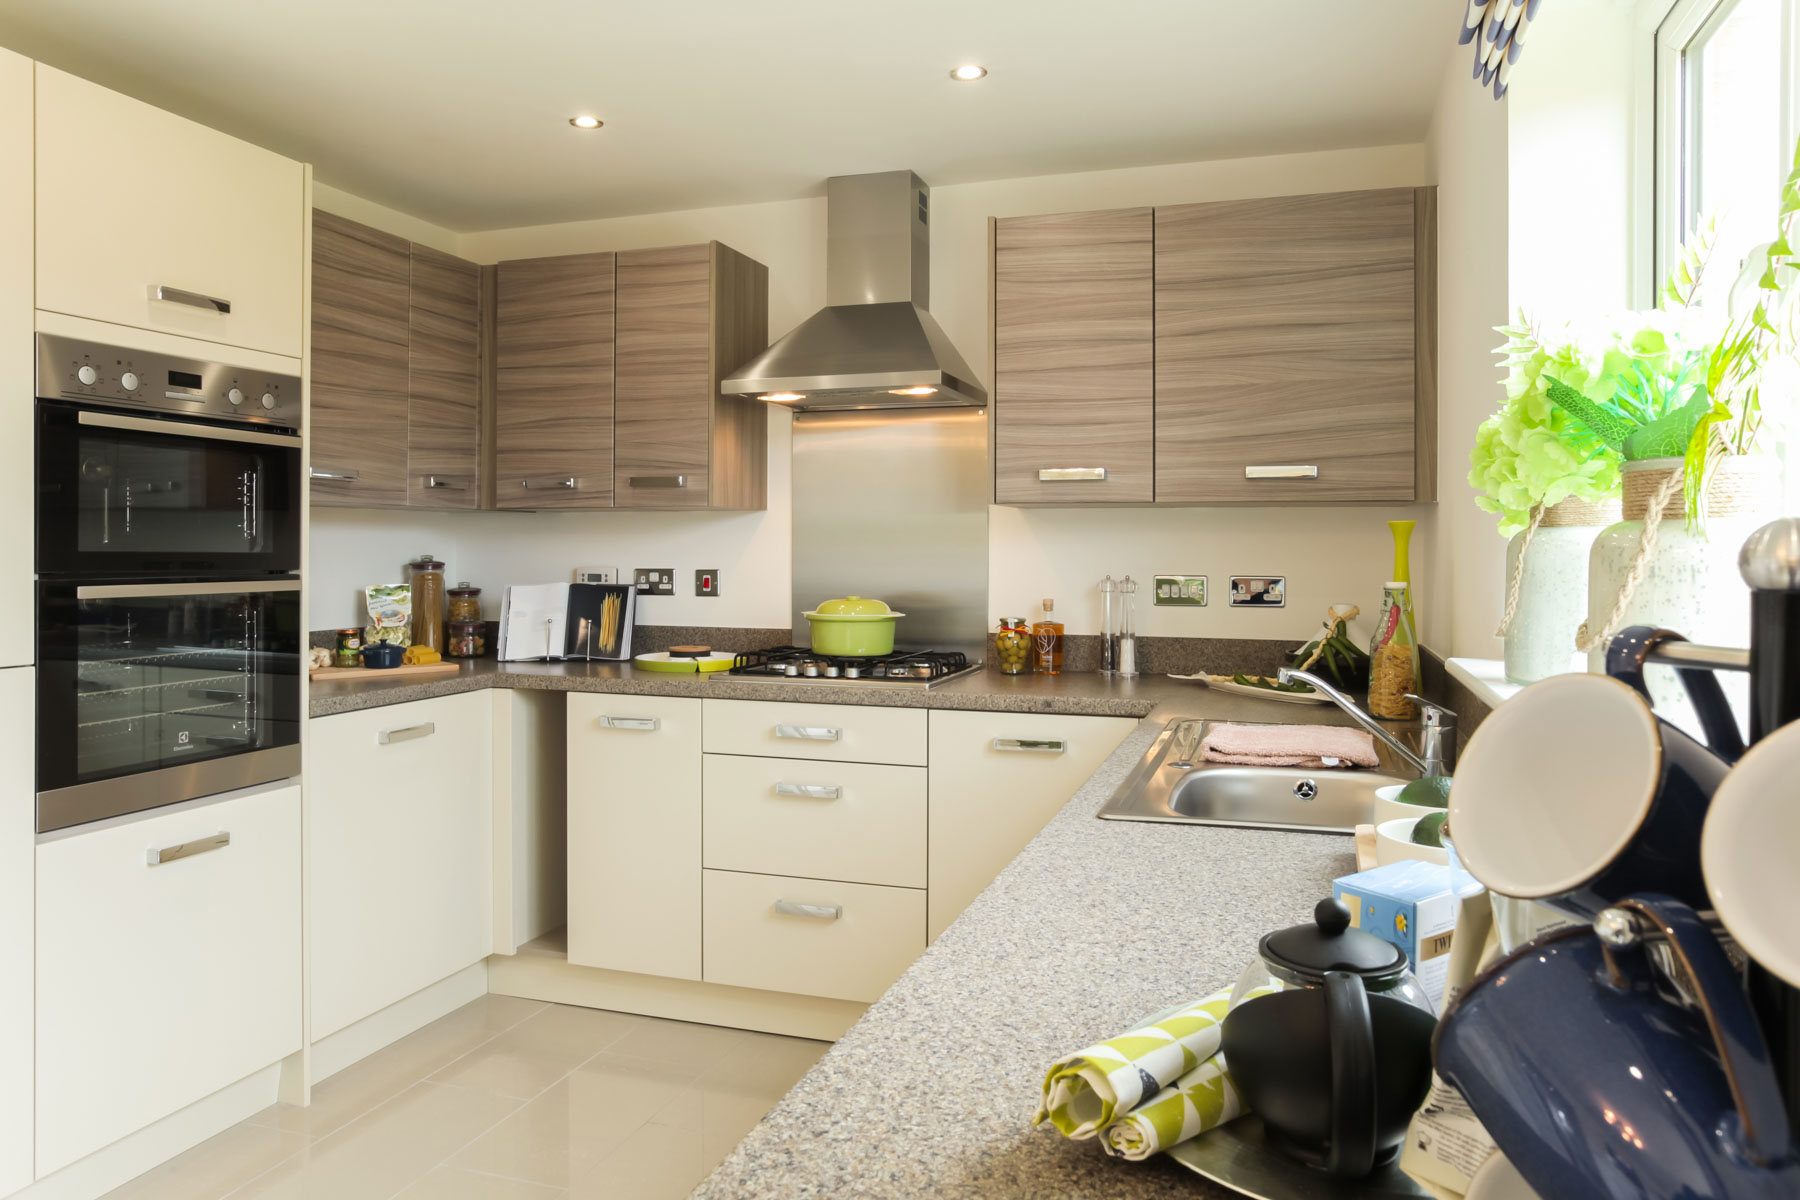 Downham kitchen